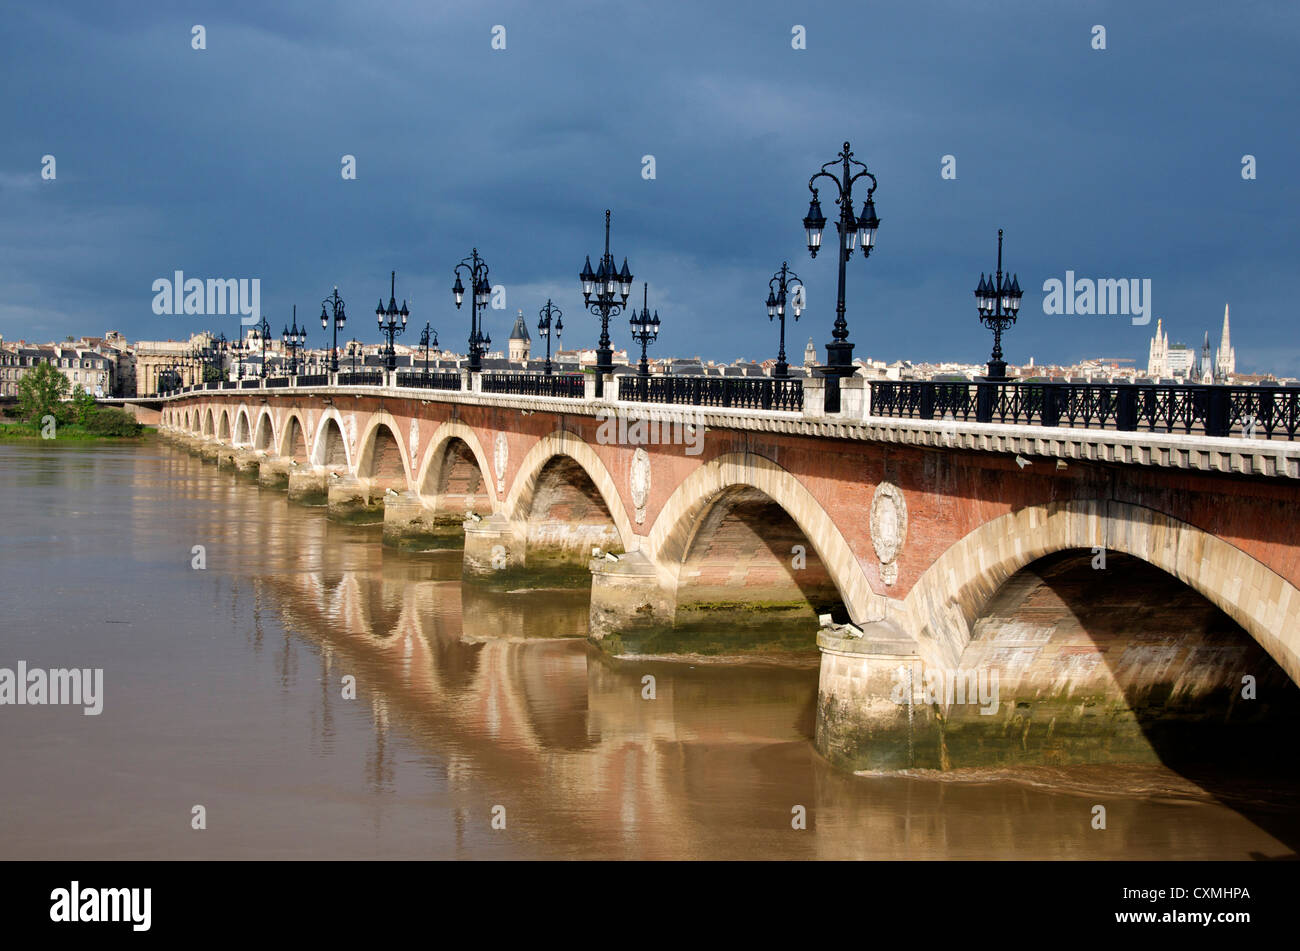 The Pont de Pierre bridge crossing the river Garonne, Bordeaux, France in the city centre - Stock Image